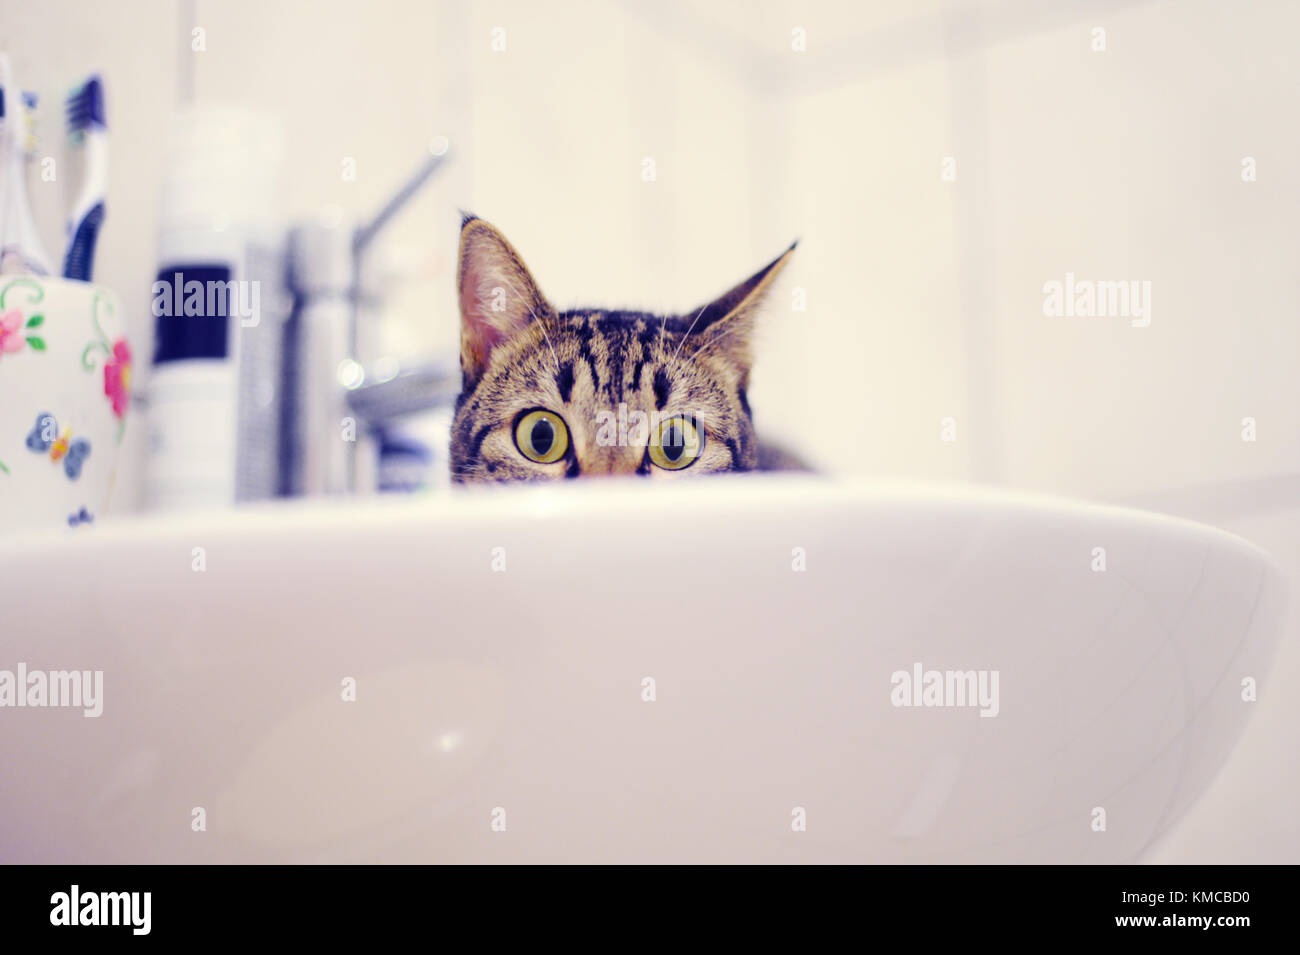 Tabby cat in the sink - Stock Image